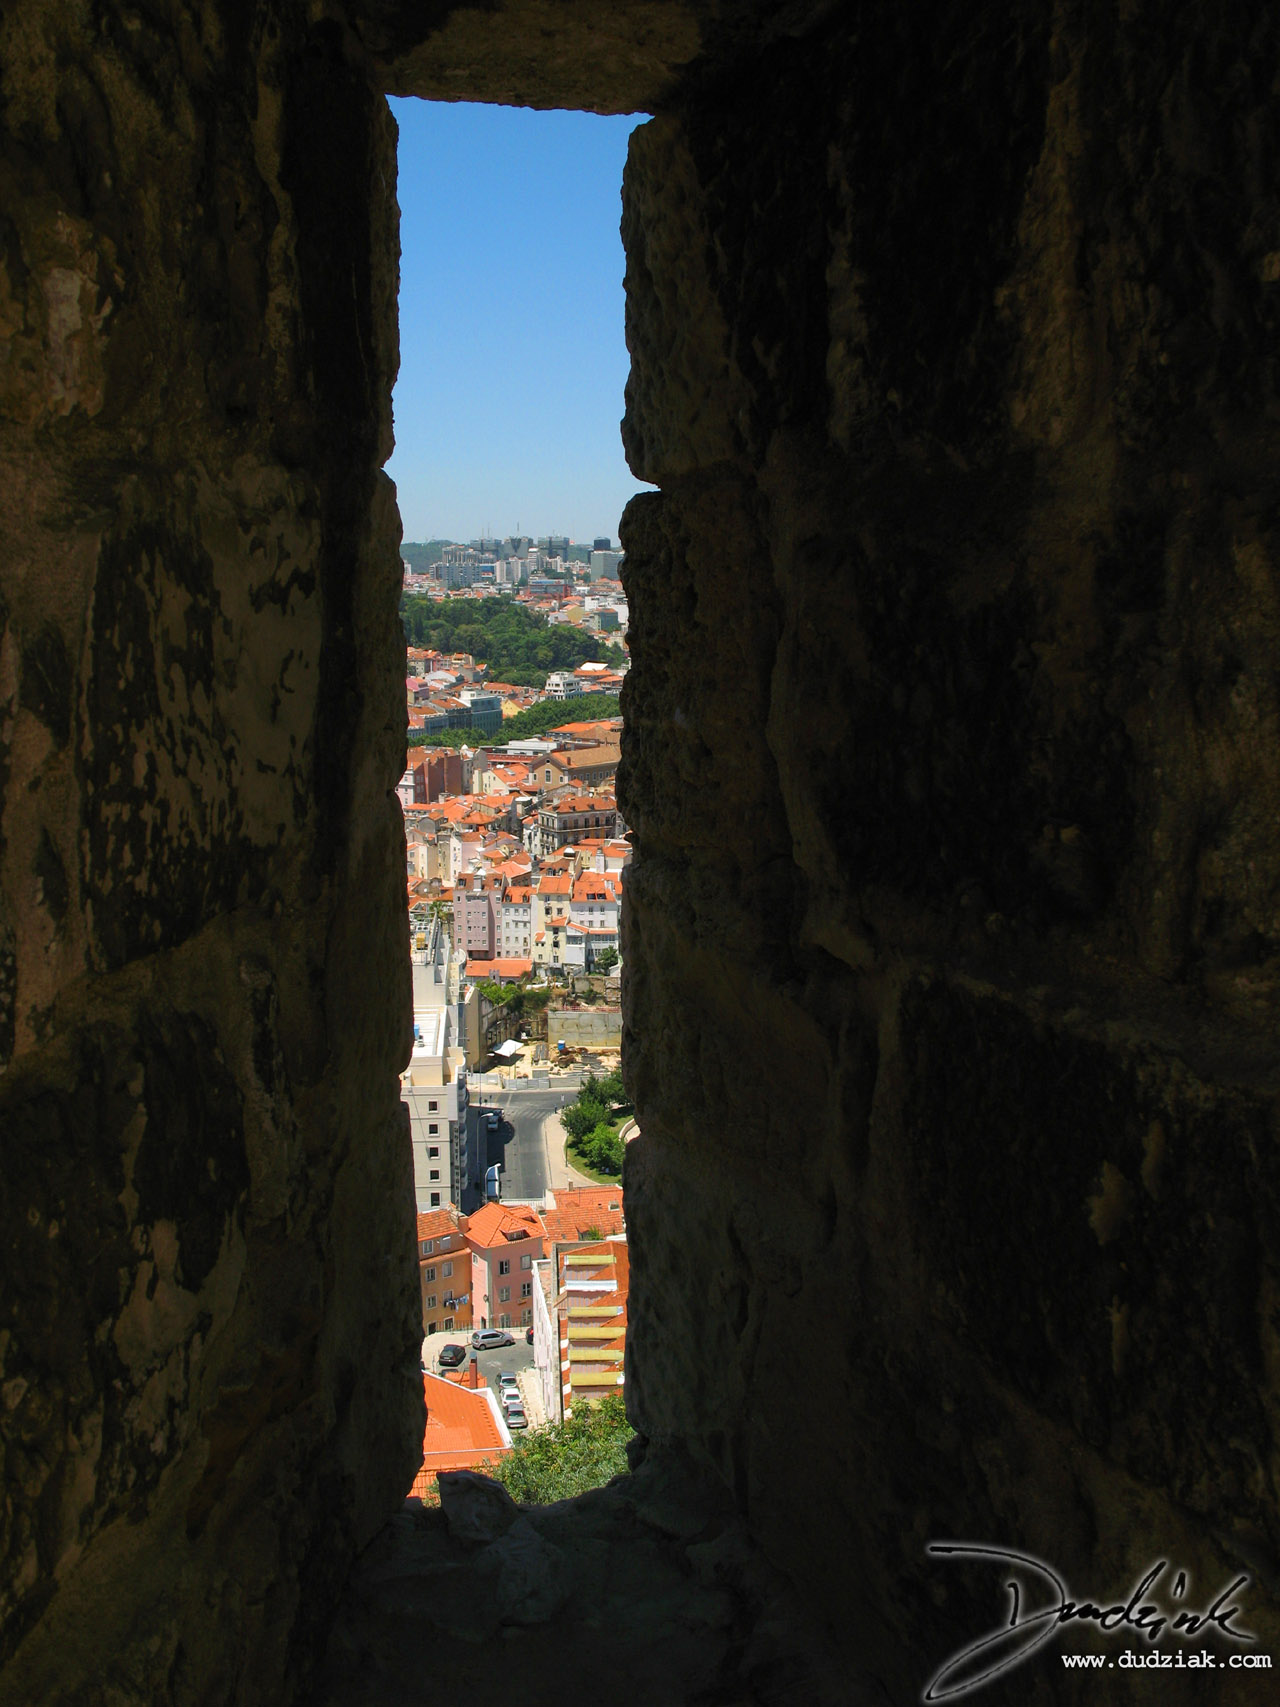 Lisboa,  Castelo São Jorge,  Castle of Saint George,  Lisbon Portugal,  Embrasure,  Arrowslit,  Castle Walls,  Loophole